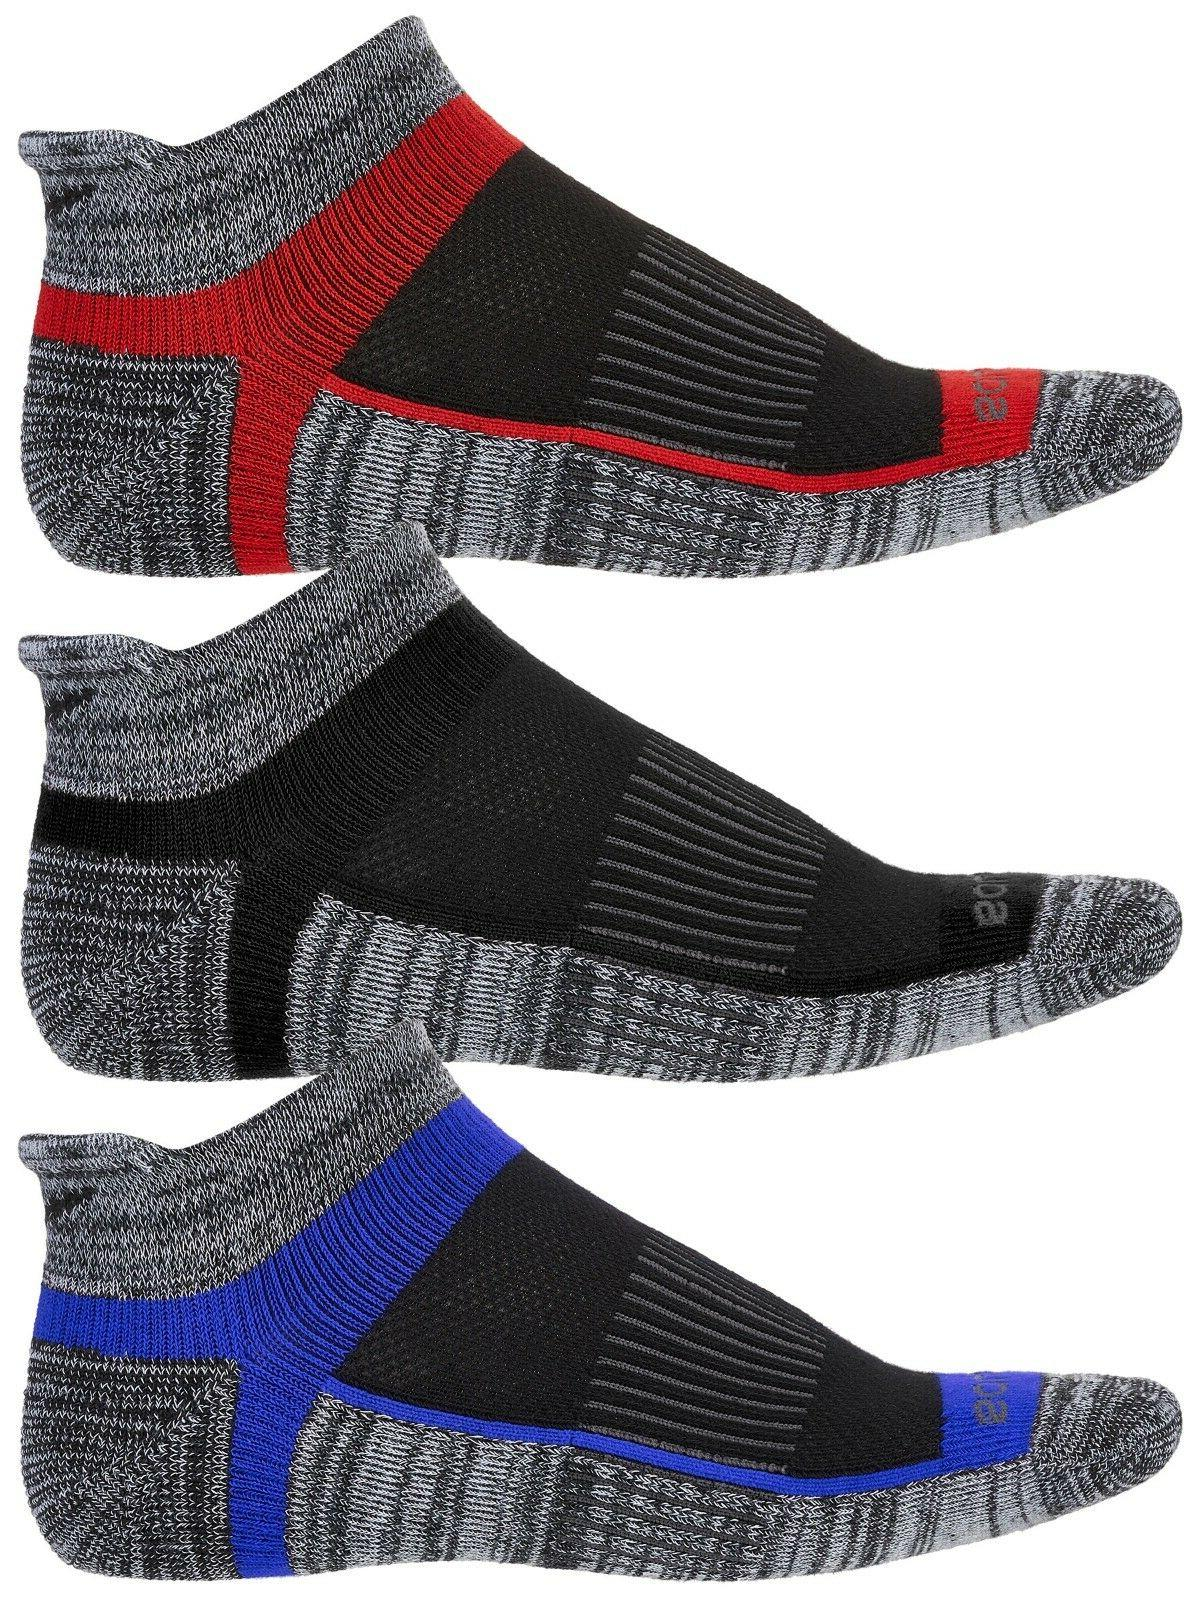 Saucony Mens Inferno No Show 3-Pack Running/Athletic Socks-H